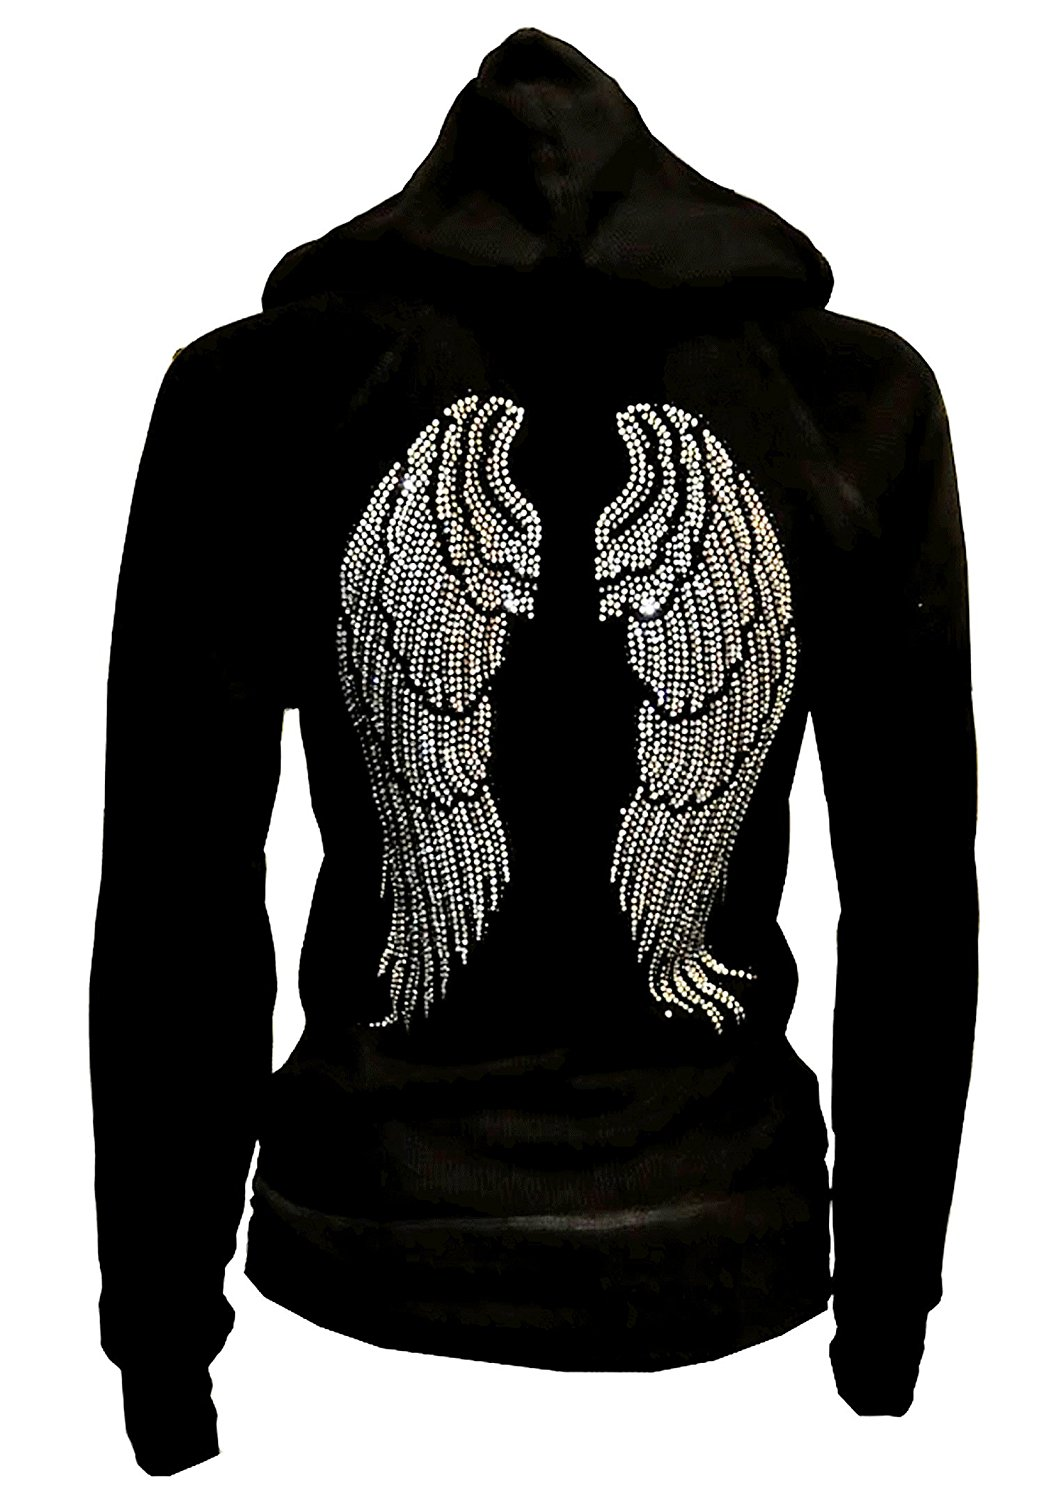 fd5dcf4cf3b1 Get Quotations · Lady Plus Size Angel Wings Zip up Hoodie Sweater with  Rhinestones Front   Back